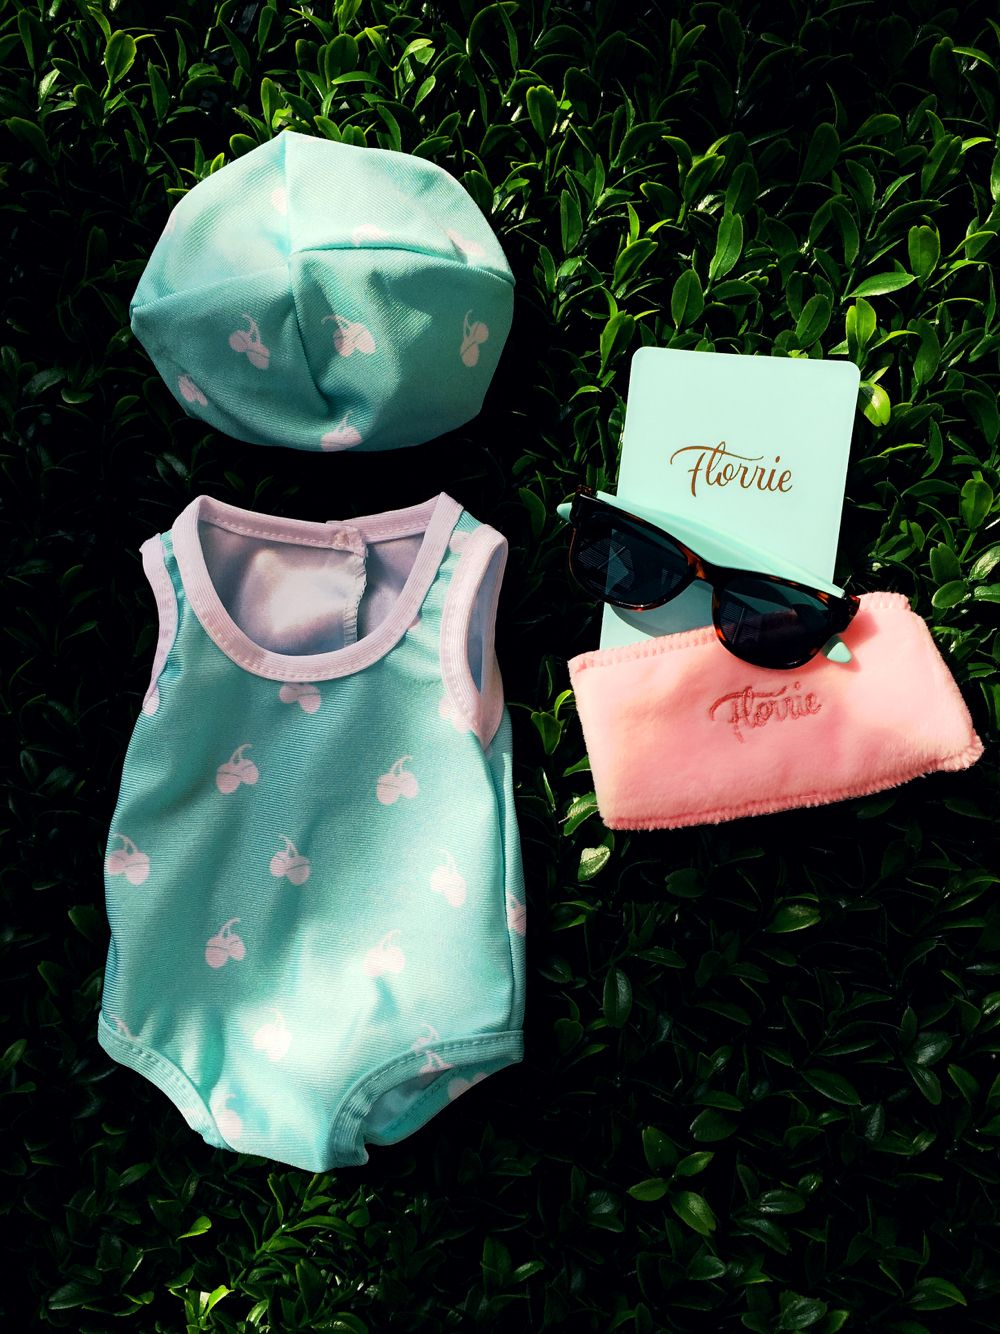 7d3ece970 Florrie swimming outfit for those hot summer days.